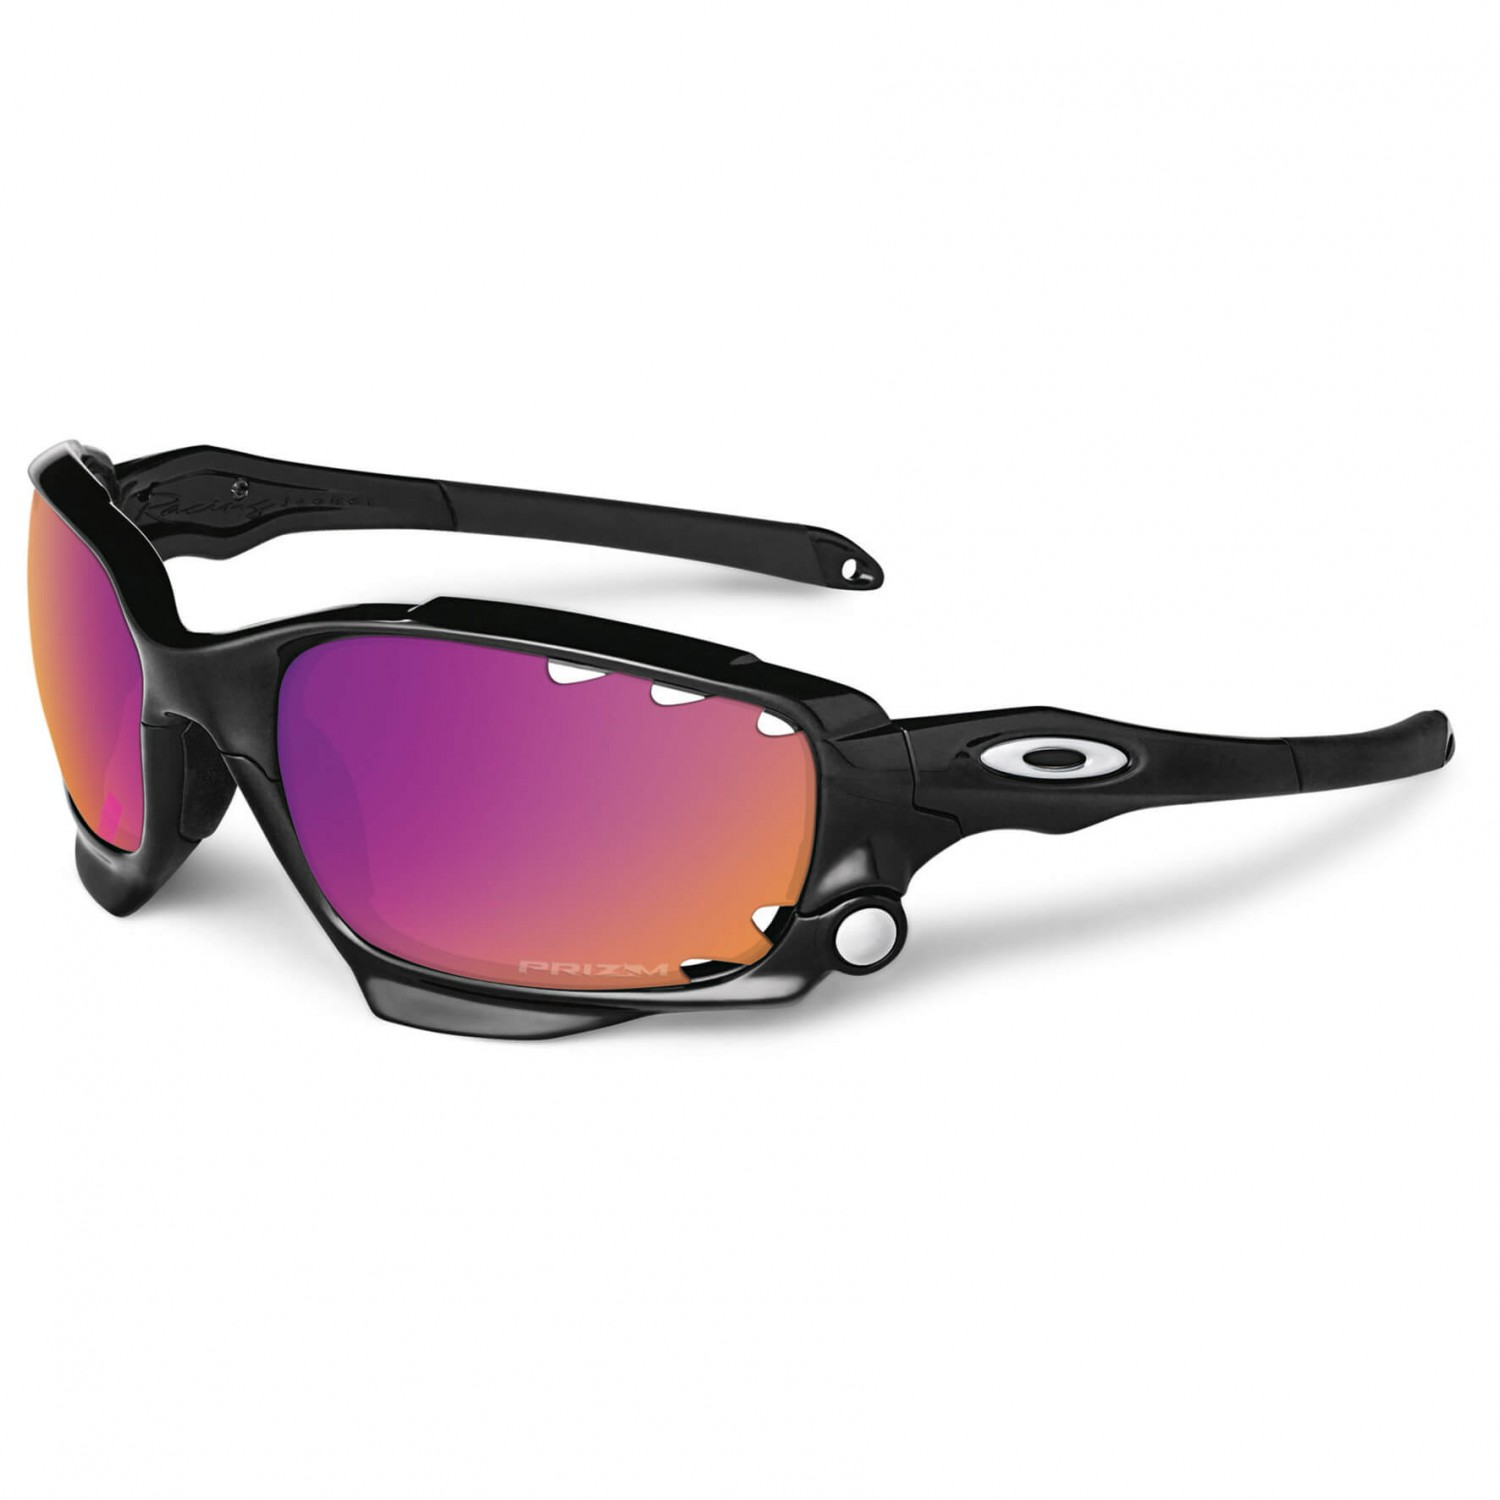 92ef54989cd2f Oakley Racing Jacket Online